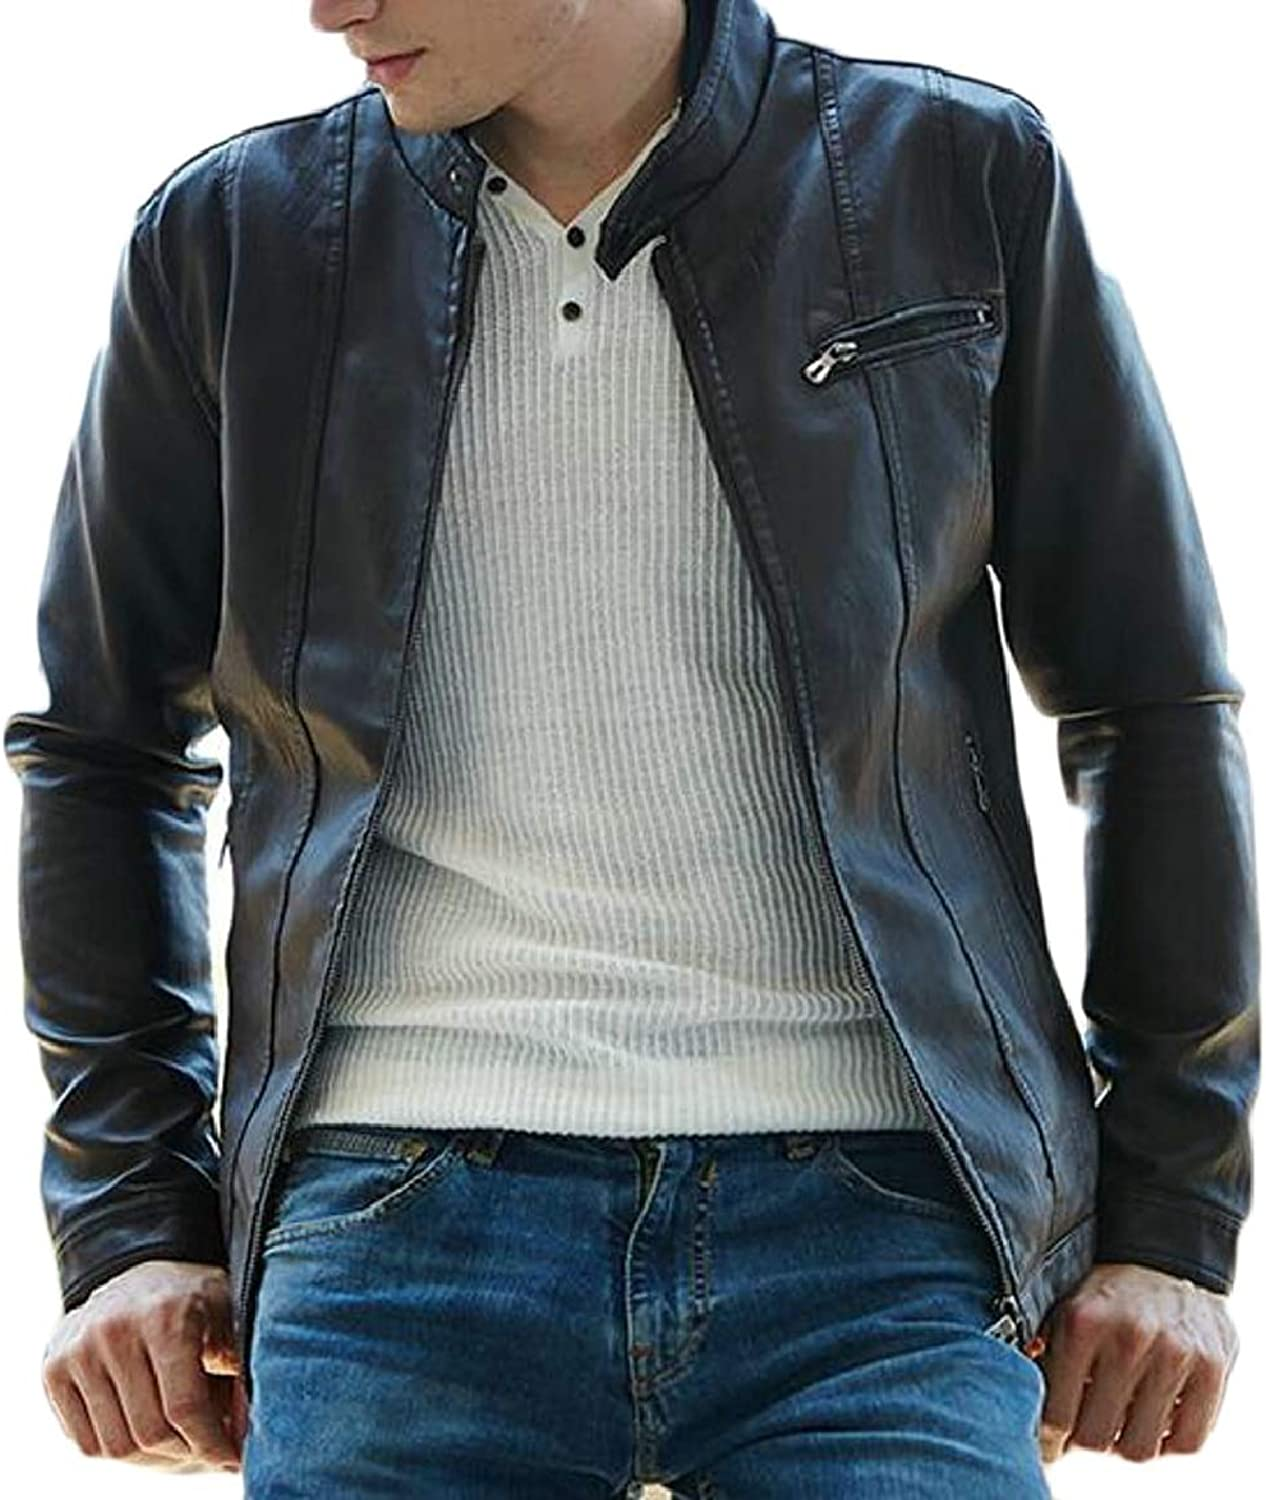 72e0aa24168 Smeiling-CA Smeiling-CA Smeiling-CA Men Classic Faux Leather Jacket  Motocycle Lightweight Jacket 2b9864